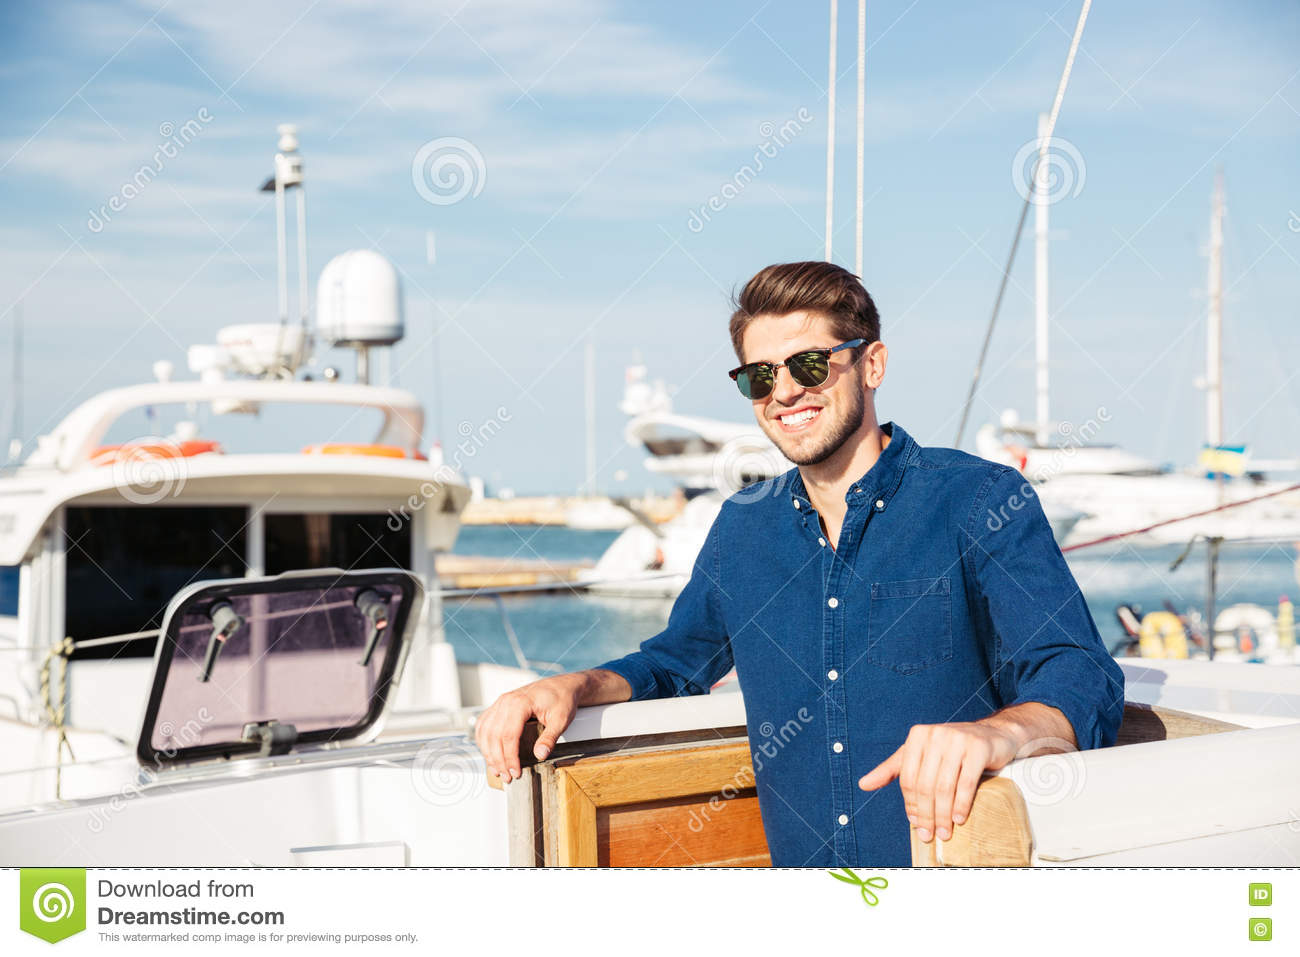 Bearded man wearing sunglasses and standing on a yacht